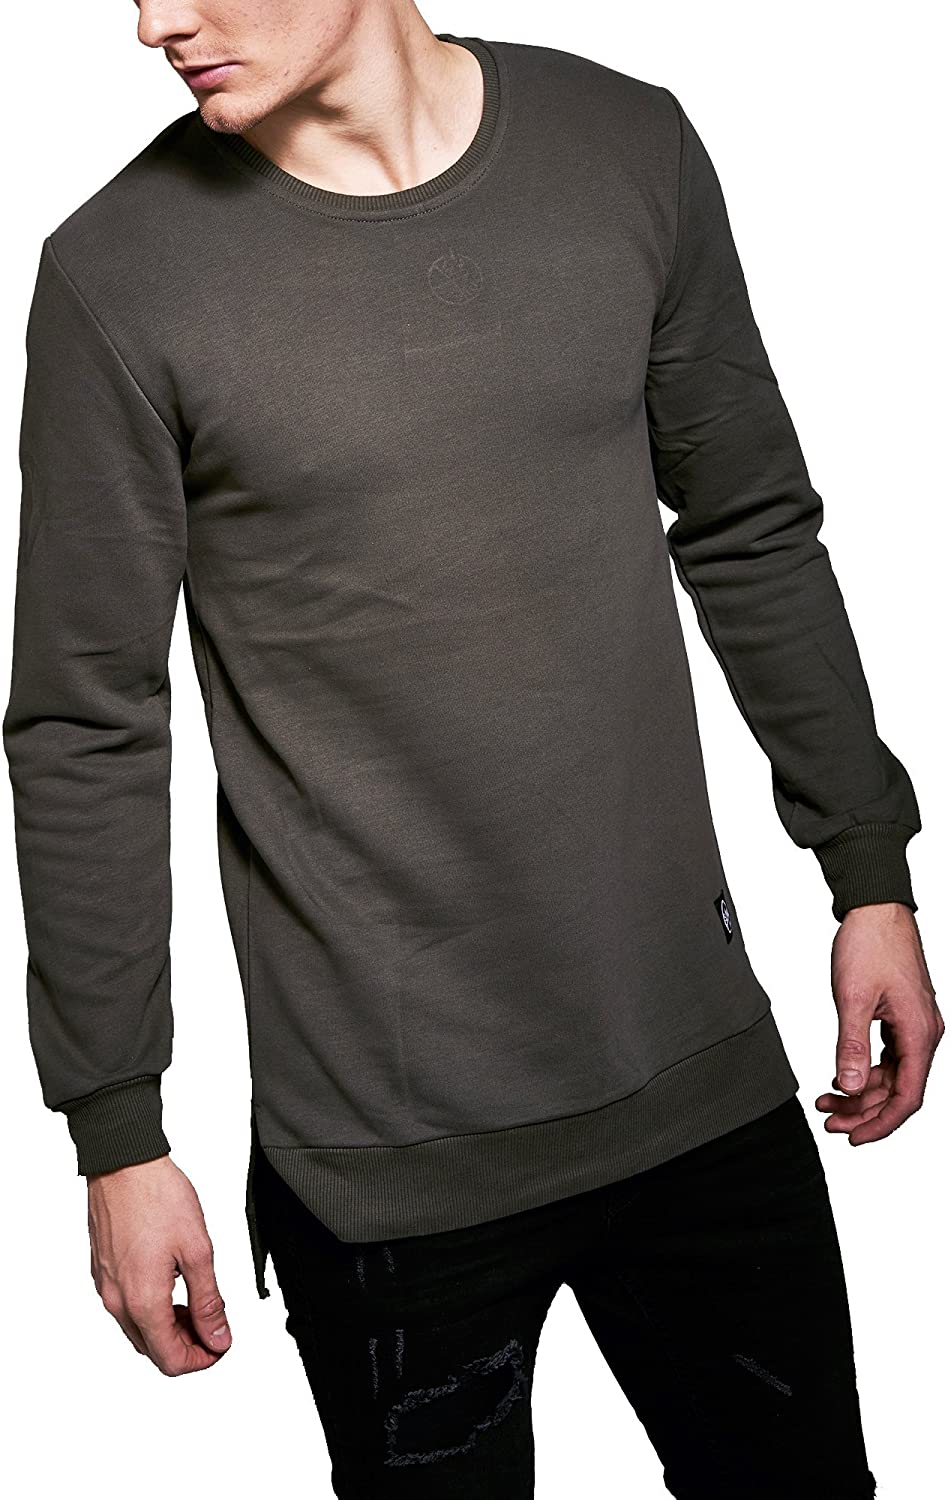 Monocloth Men's Street Wear Sweatshirt Oversized Basic Street Fashion Crew Neck Three Thread Plain Slim Fit 0002